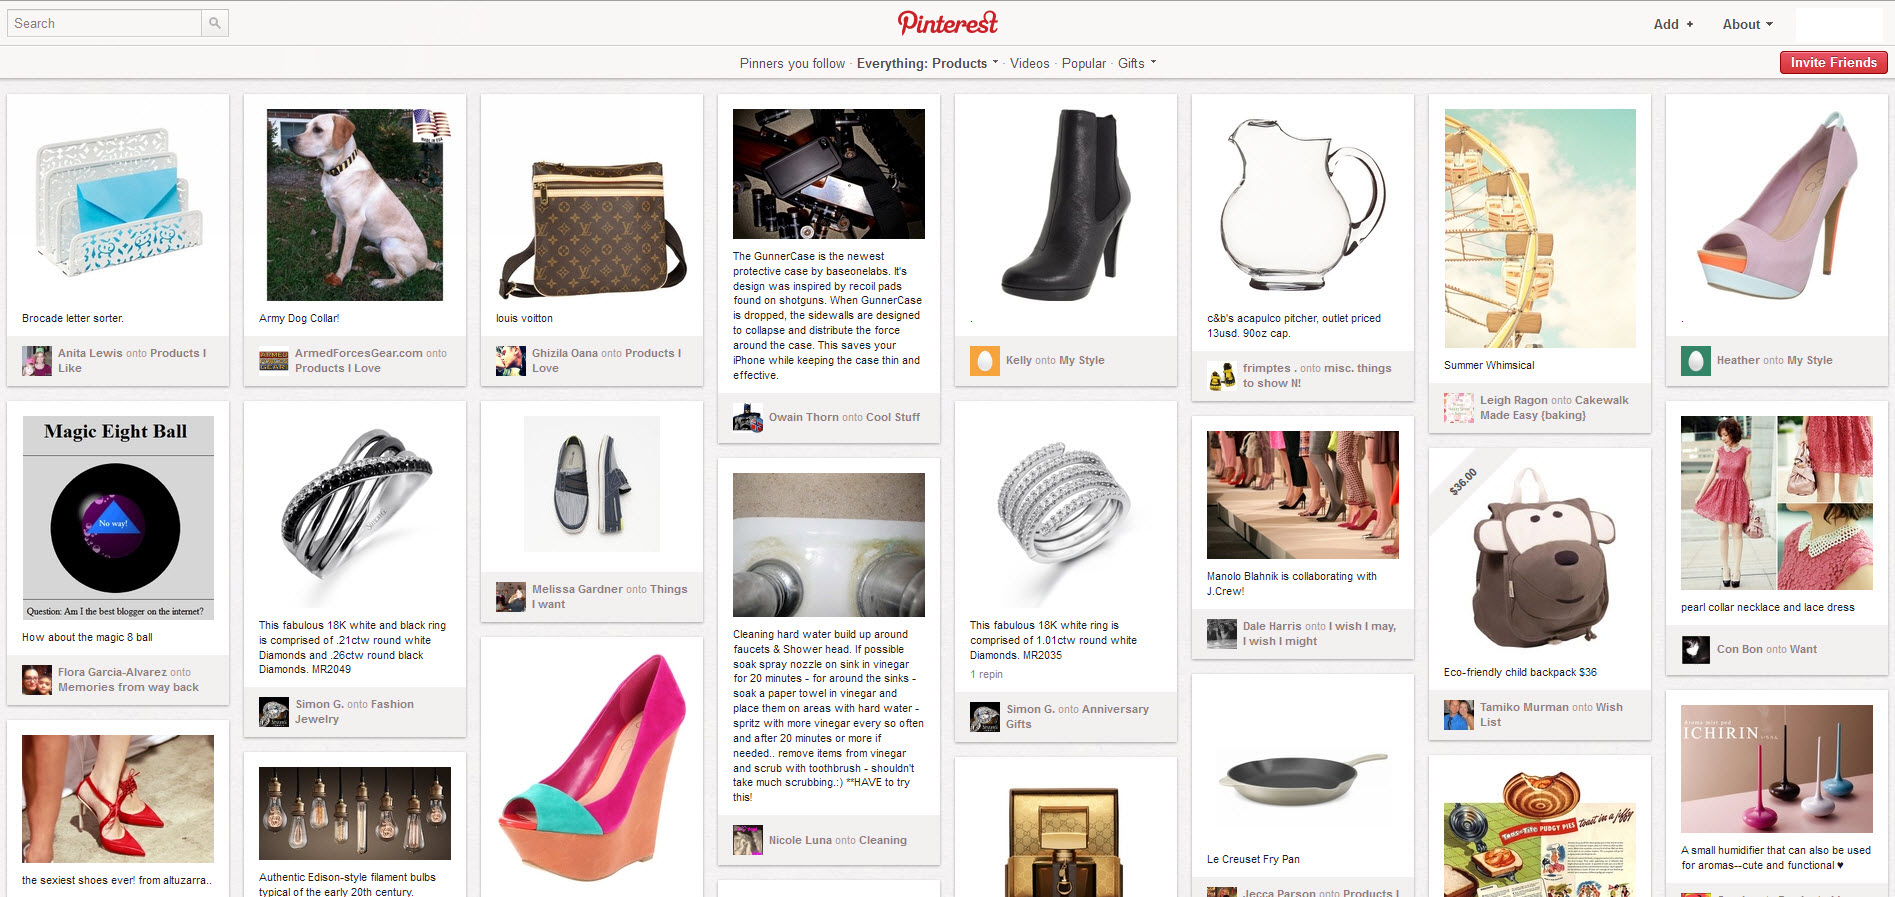 10 Tips To Make The Most Of Pinterest In Your Online Store